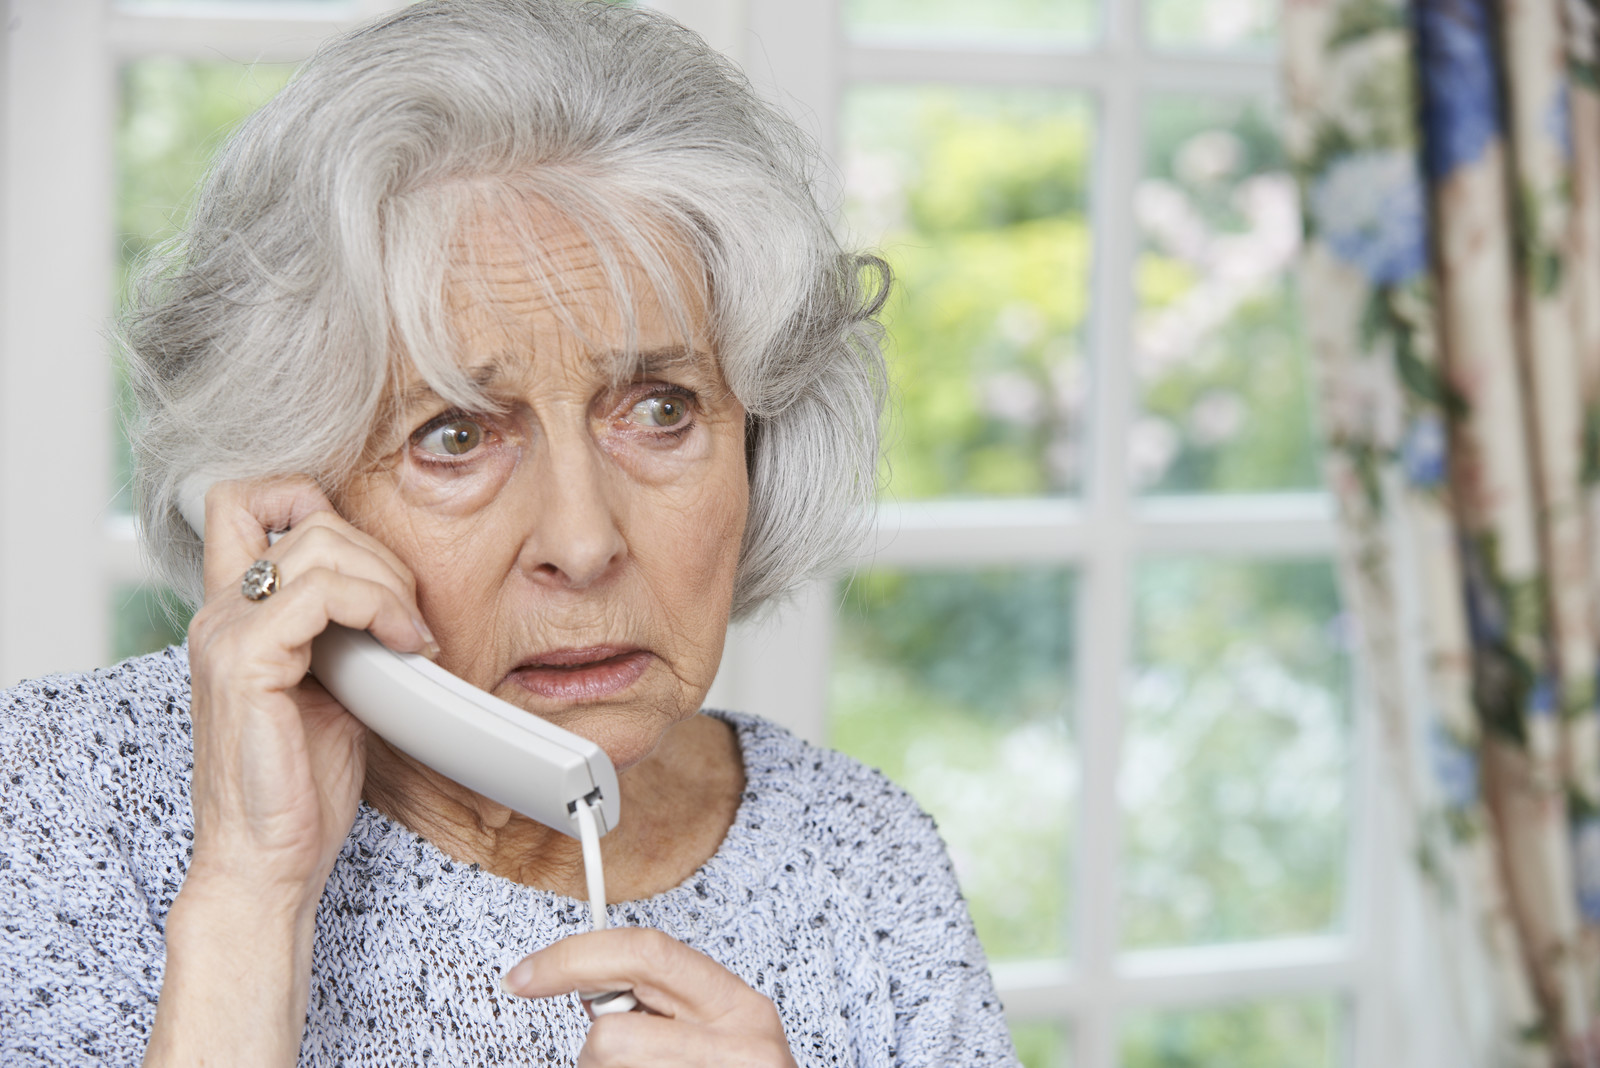 Scared senior woman on the phone in her home